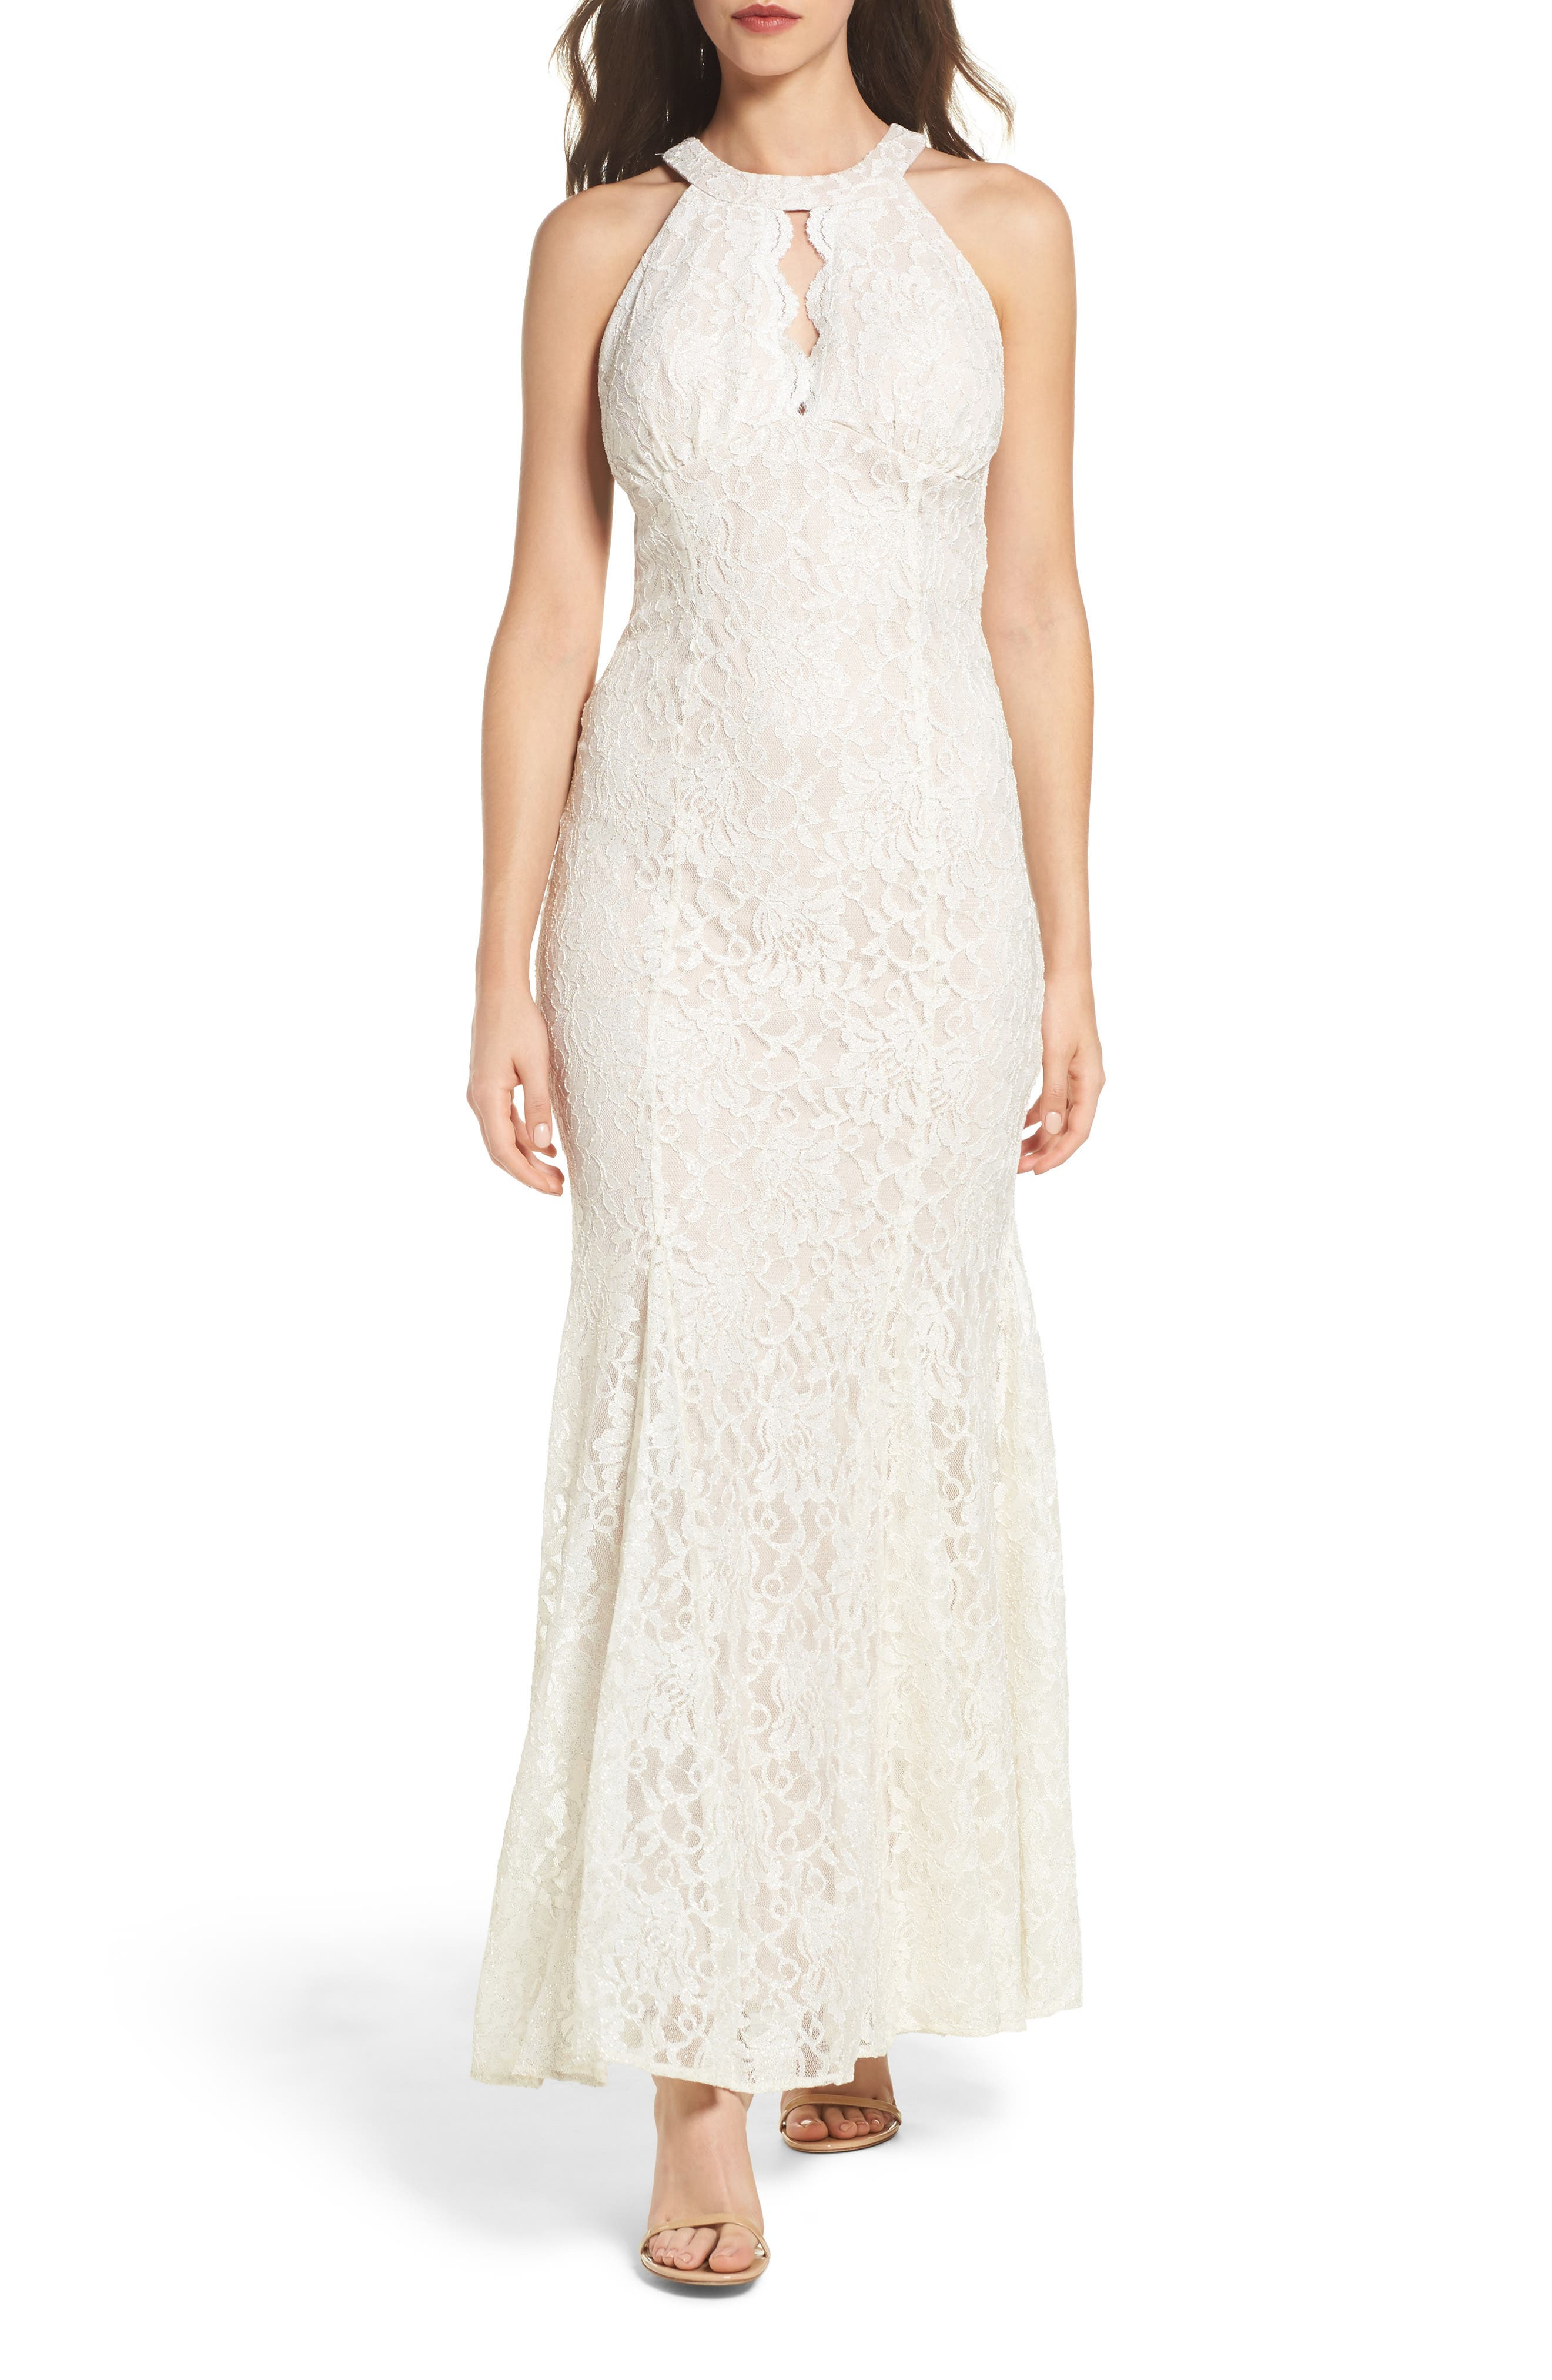 Scallop Detail Lace Gown,                         Main,                         color, Ivory/ Nude